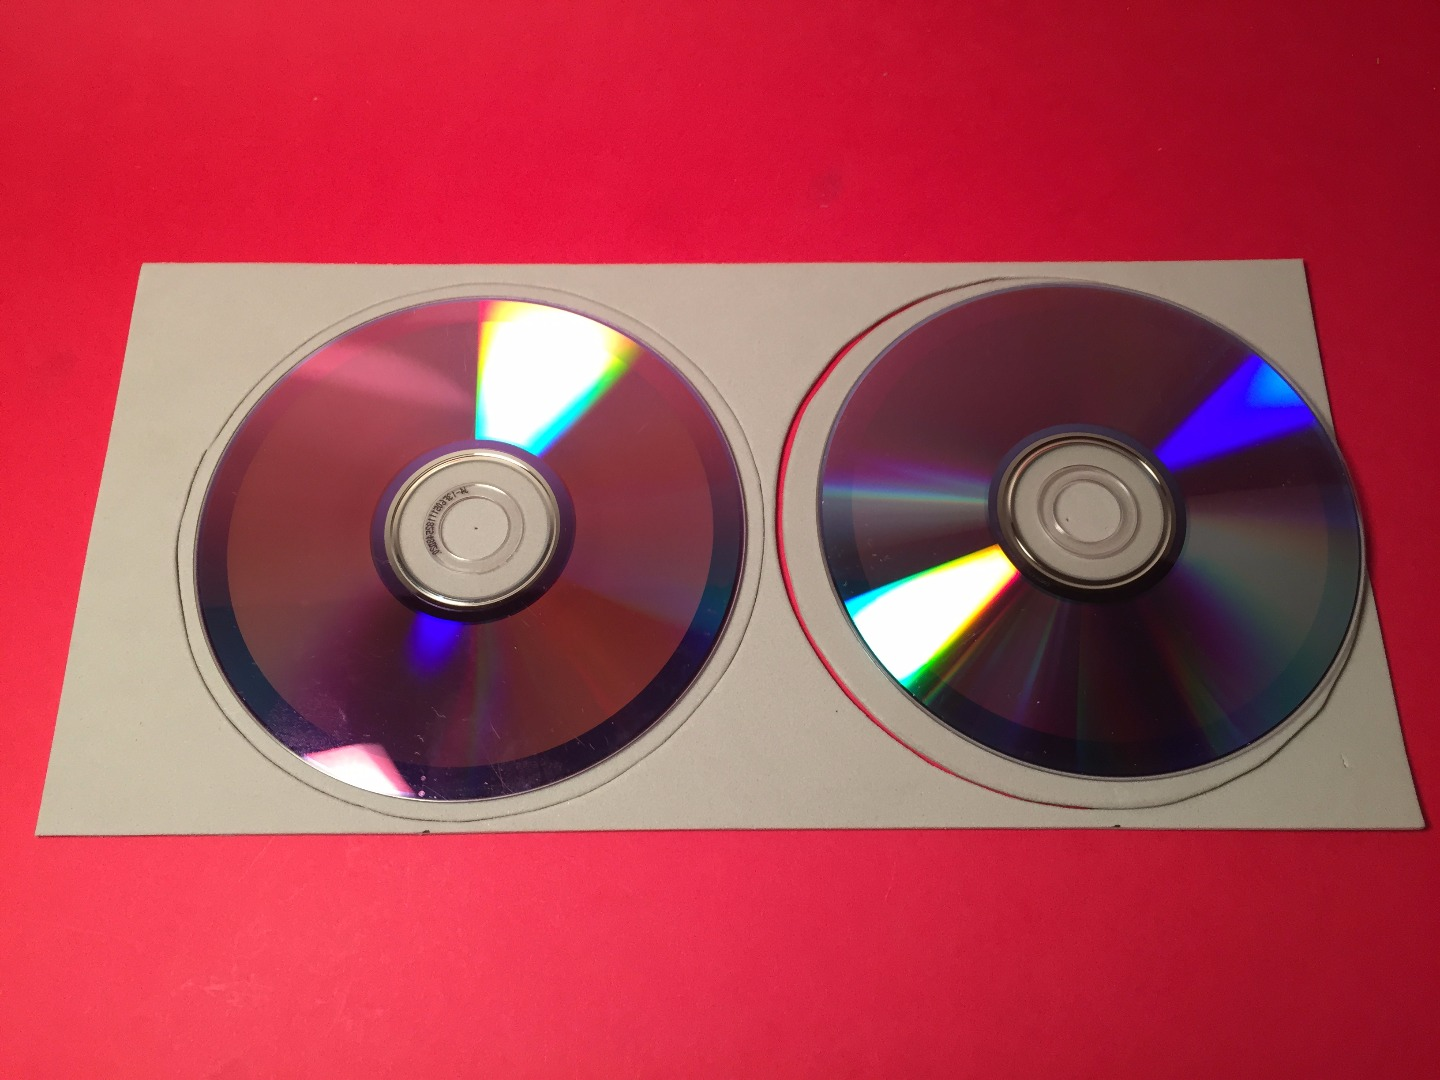 Picture of The CDs - Second Option